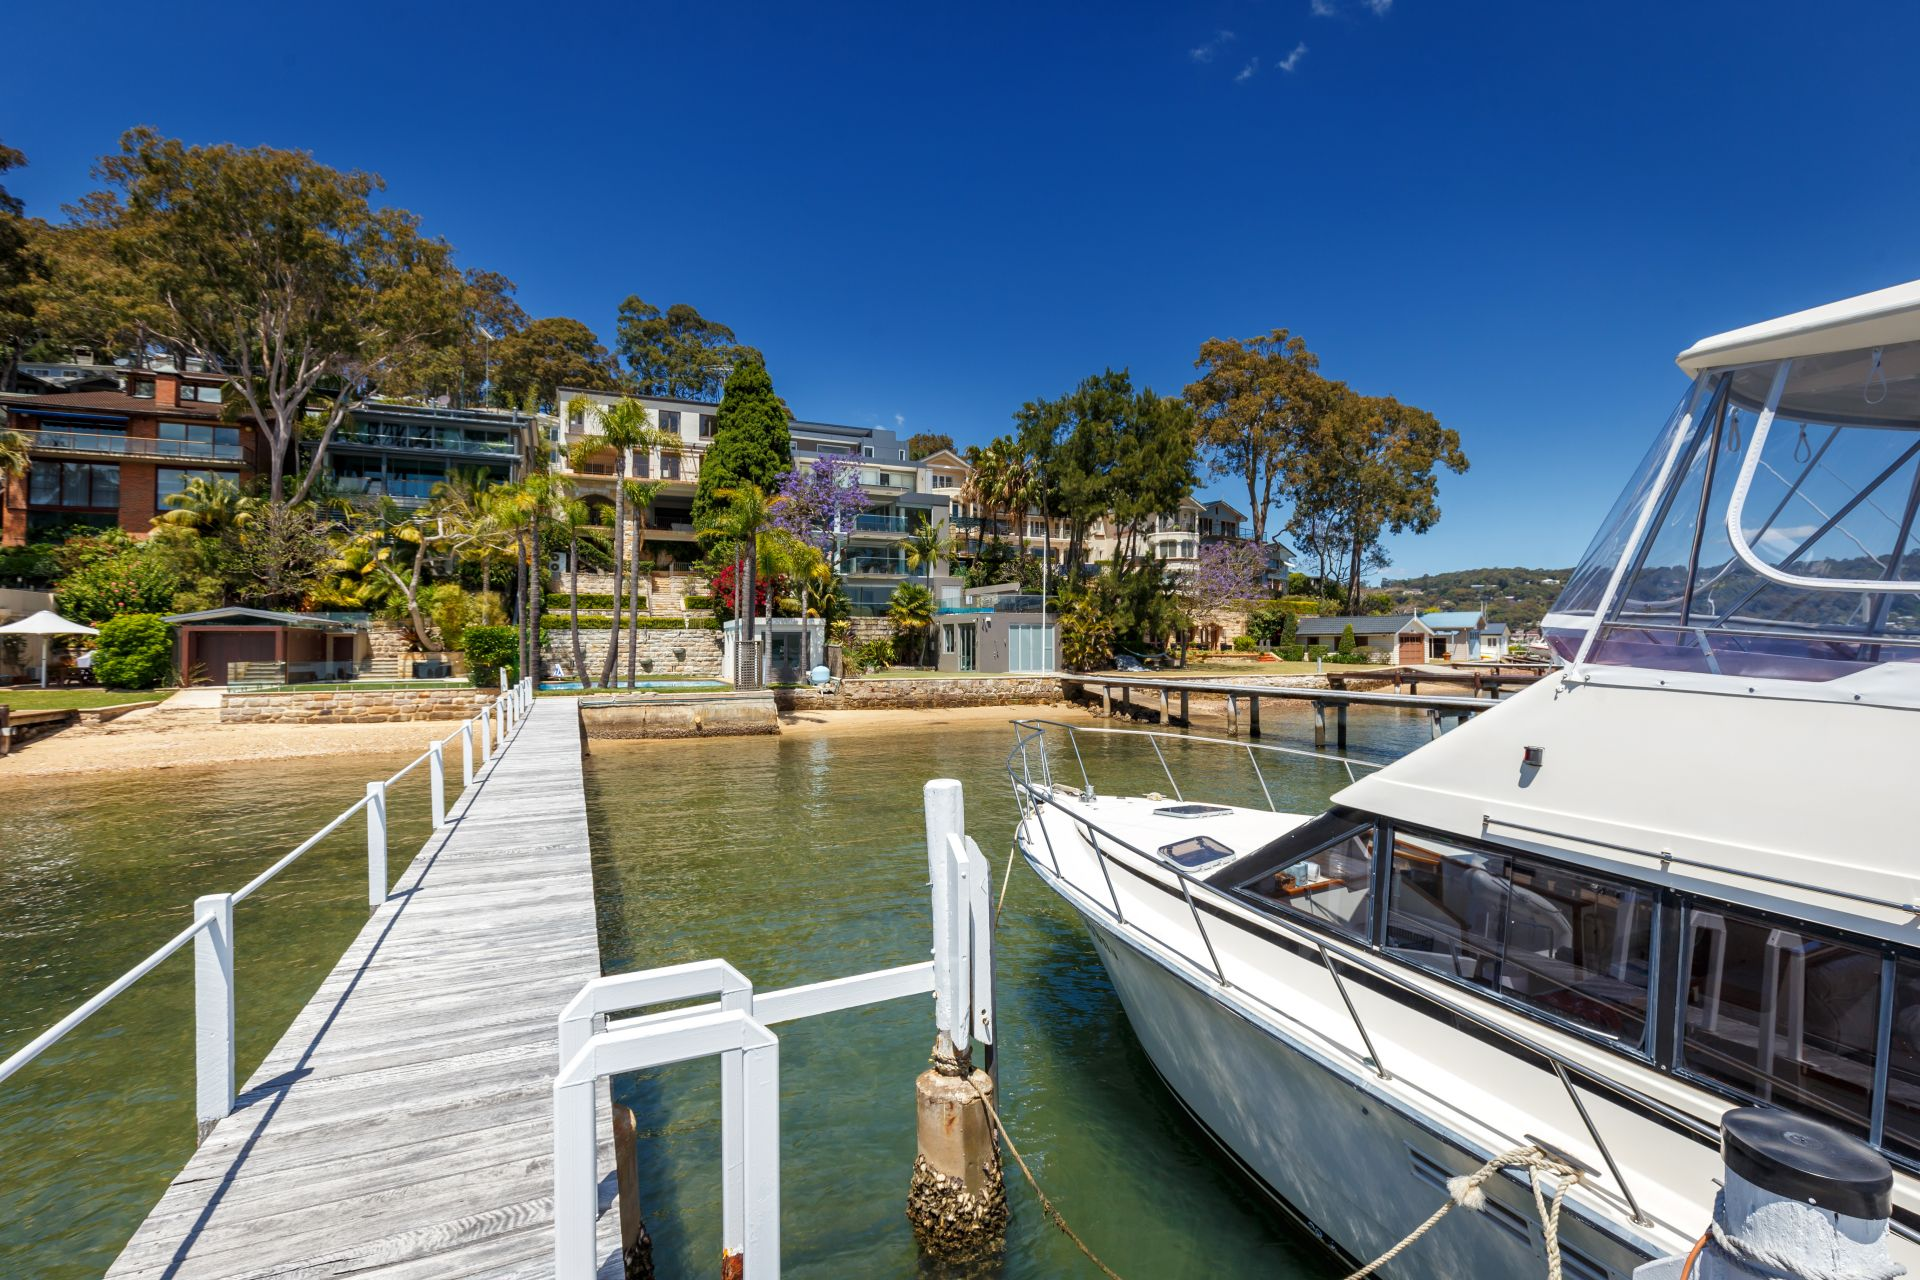 Additional photo for property listing at 'La Dolce Vita' - Mediterranean-inspired waterfront 98 Prince Alfred Parade Newport, New South Wales,2106 Australia